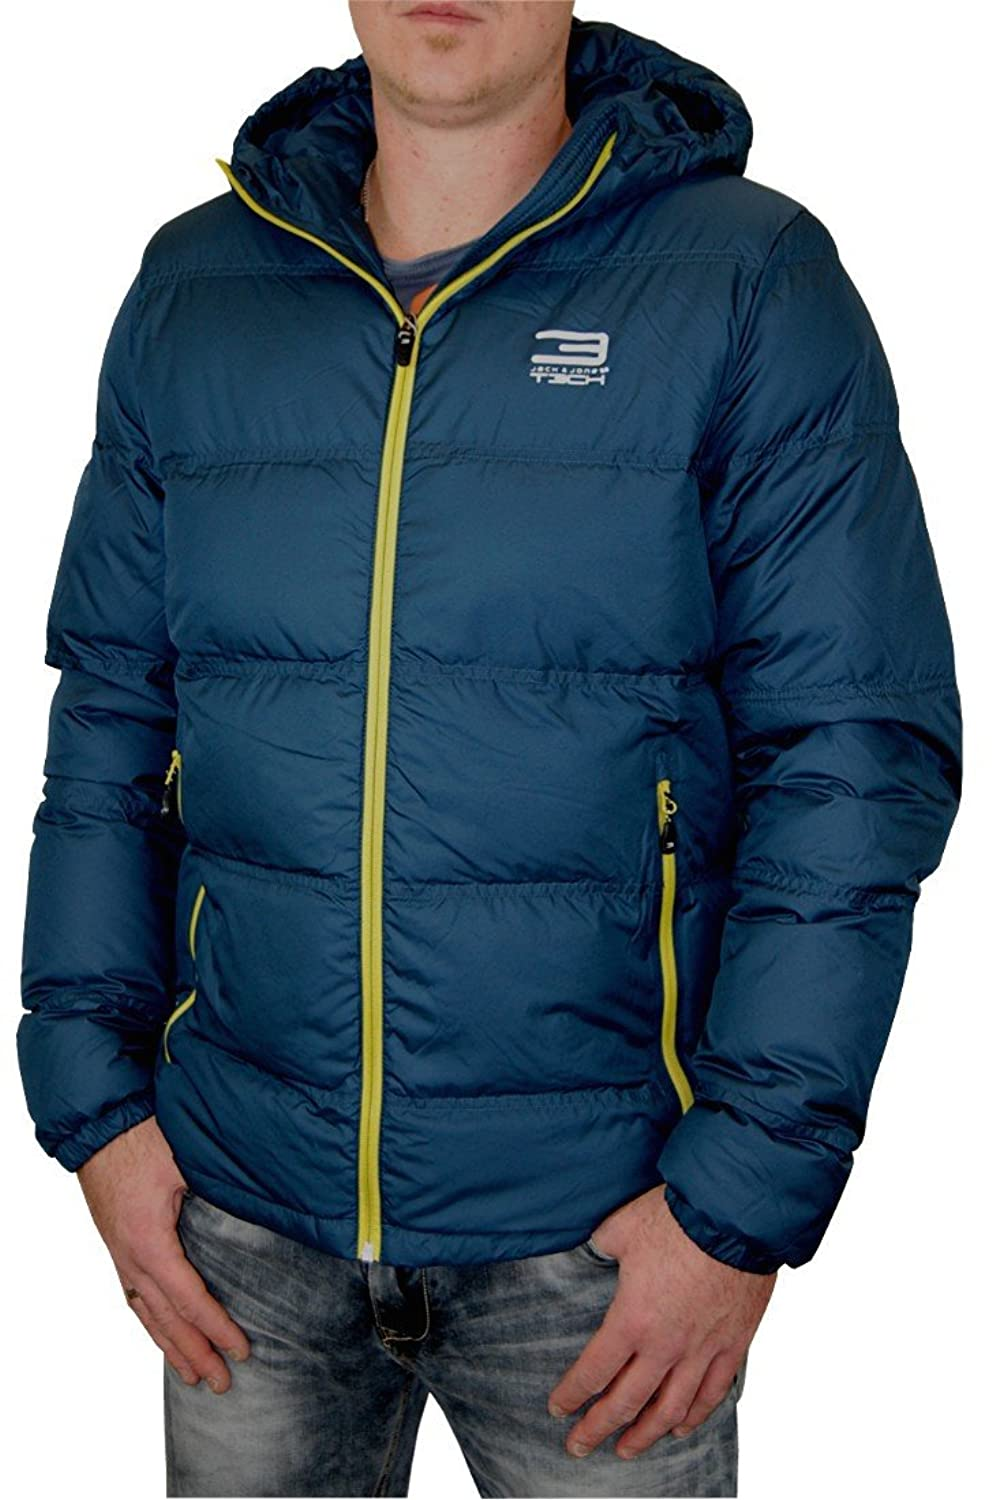 Jack & Jones Sabio Down Jacket Daunenjacke Winterjacke bestellen